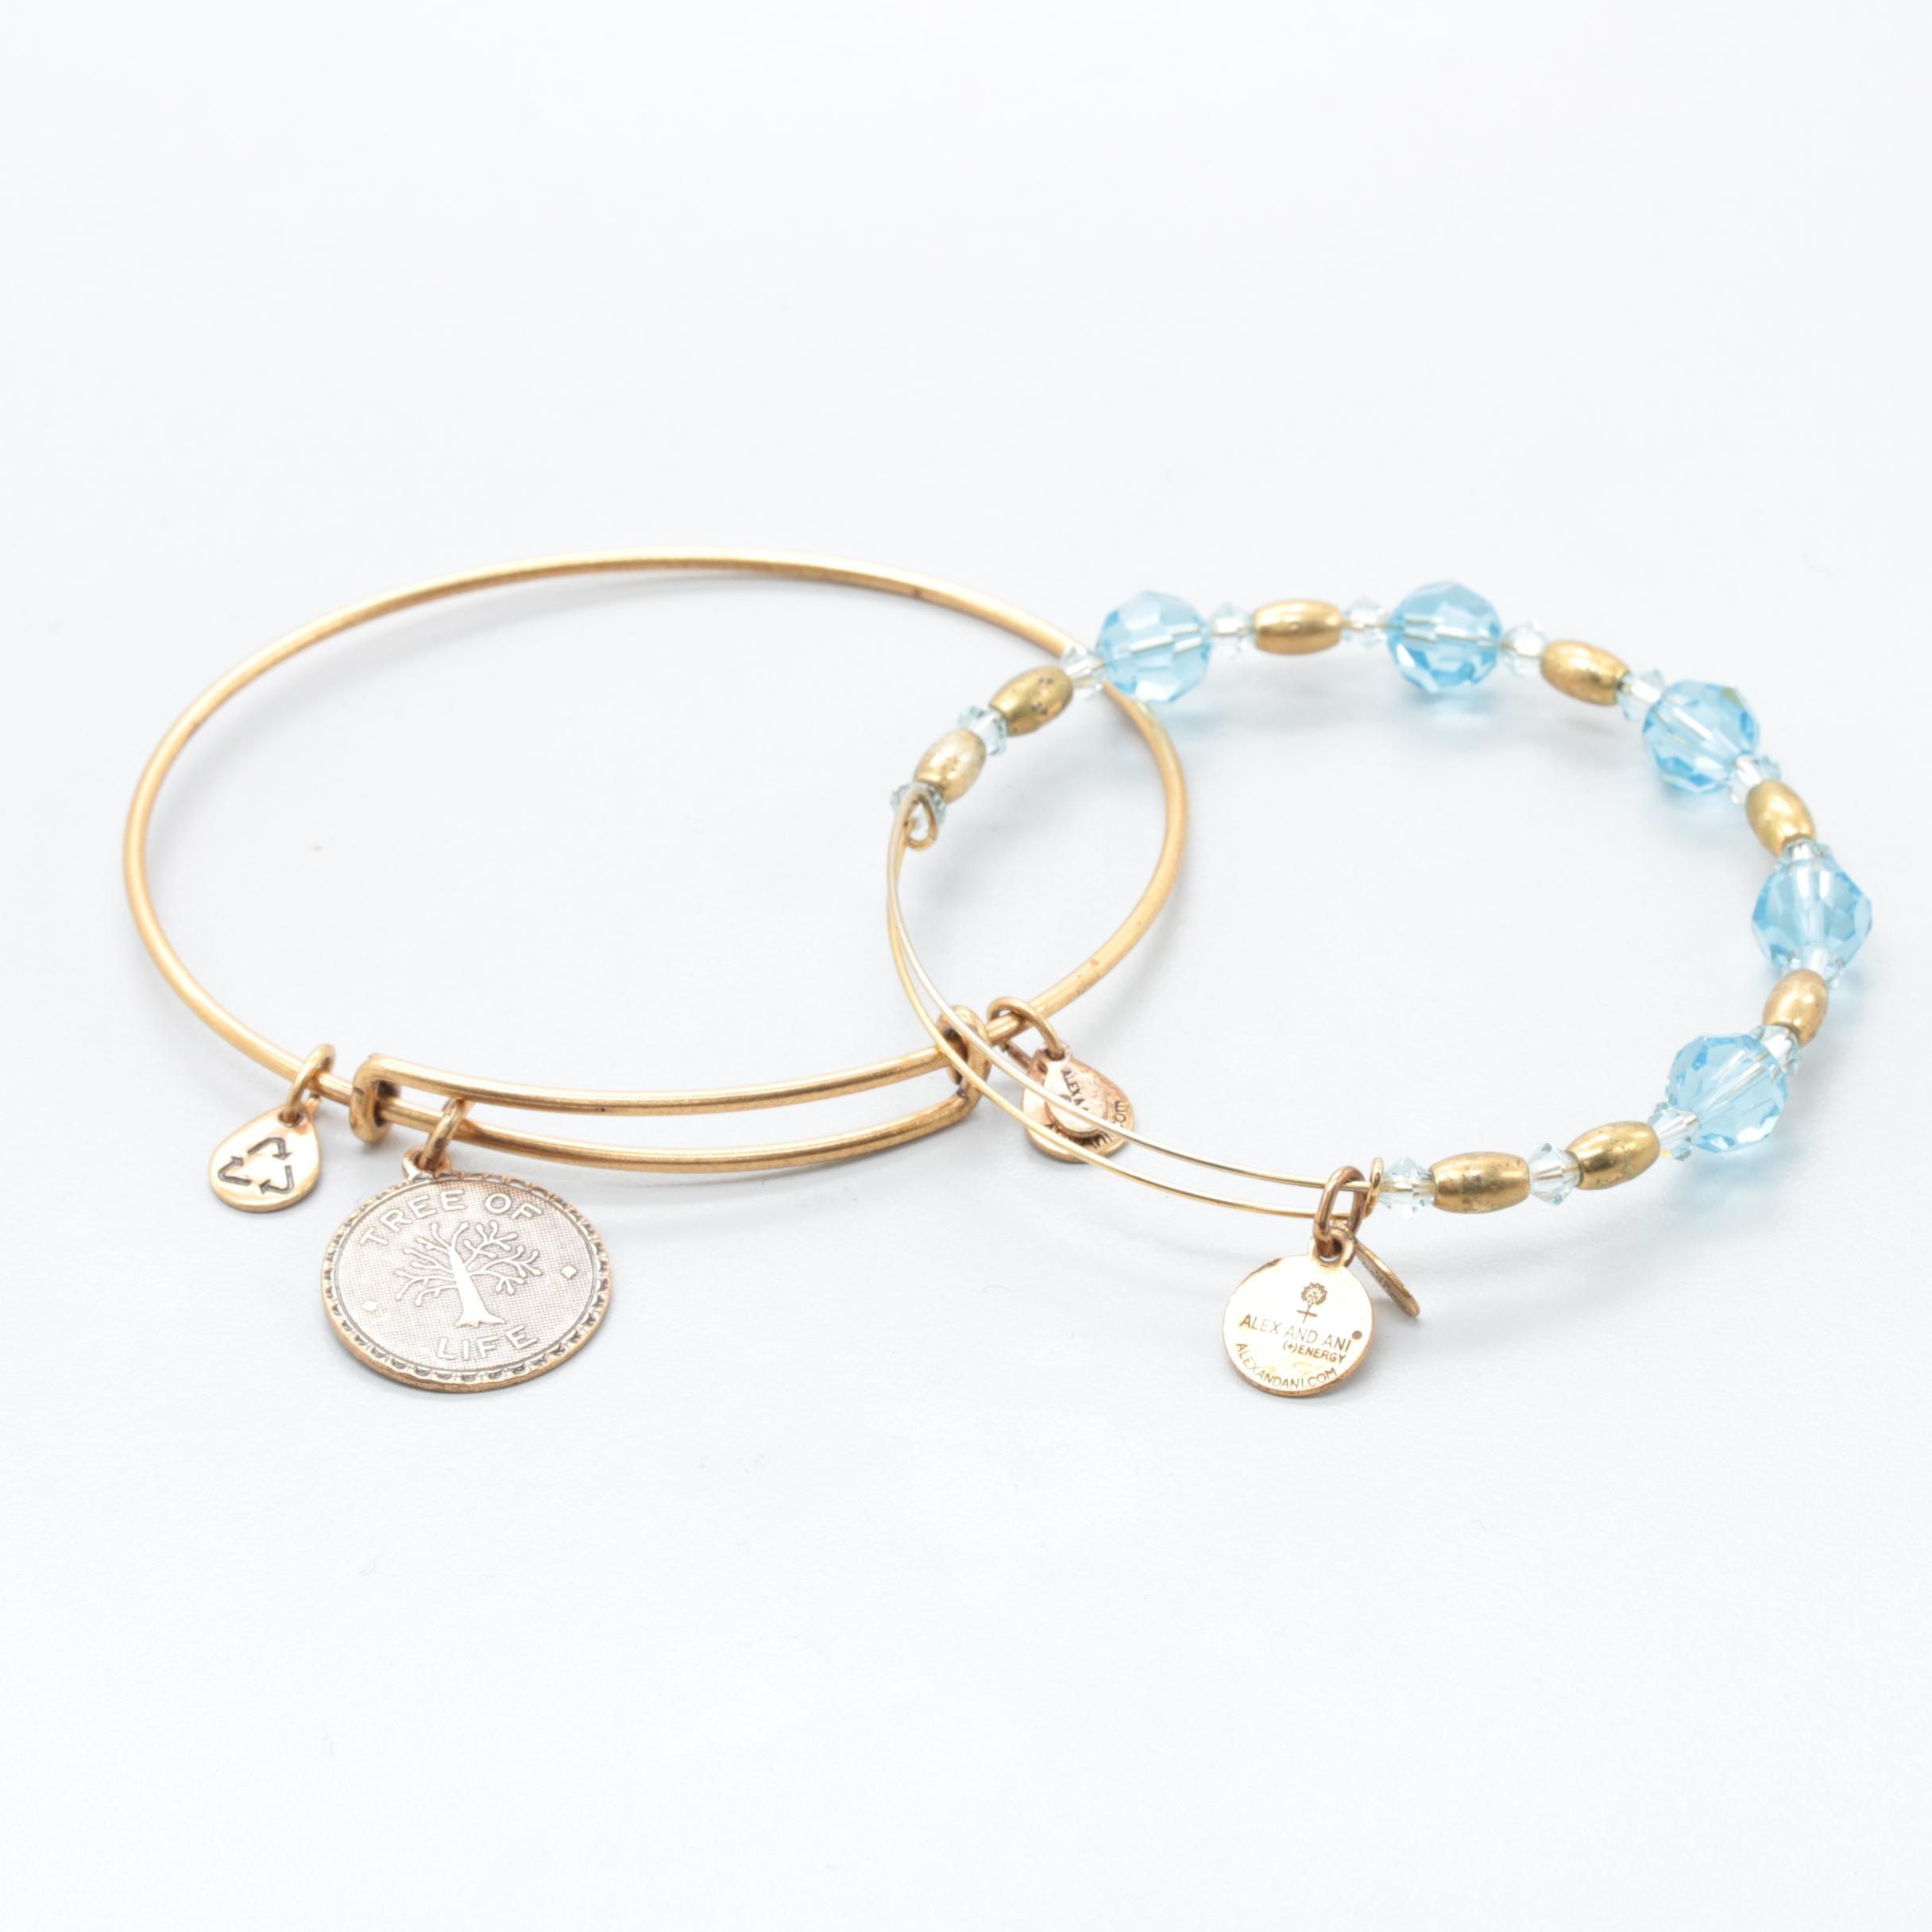 Alex and Ani Gold Tone Bracelet Selection Including Glass Beads